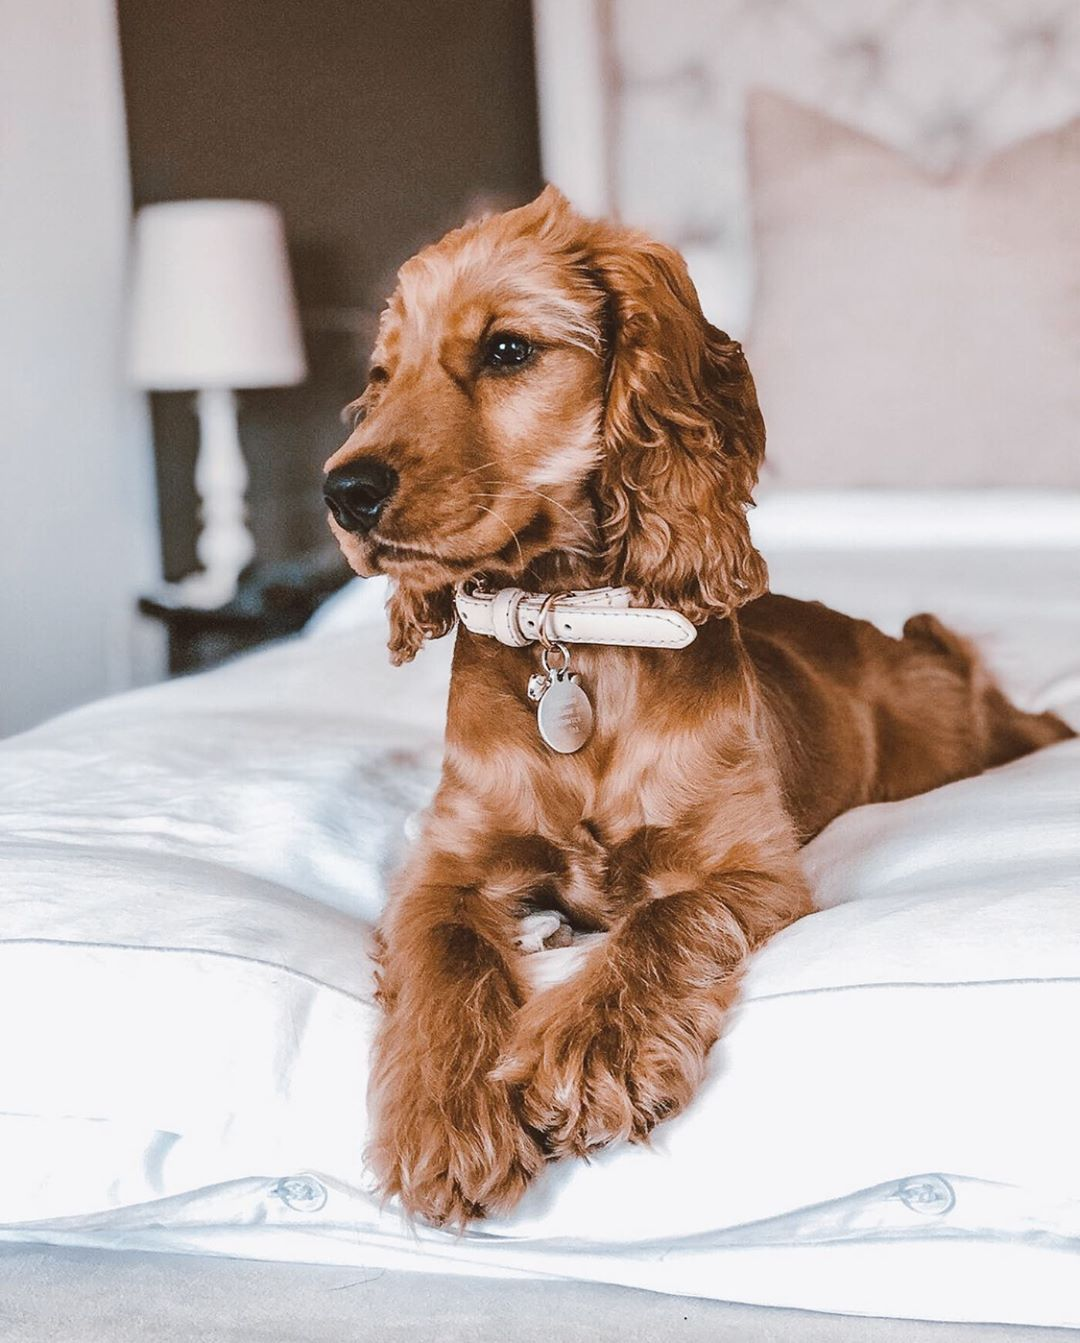 How To Stop Dogs Barking At Other Dogs Sweet Sweet Margotthecocker We Love Your Adorable Face Your Trendy Co Cocker Spaniel Puppies Dogs The Perfect Dog